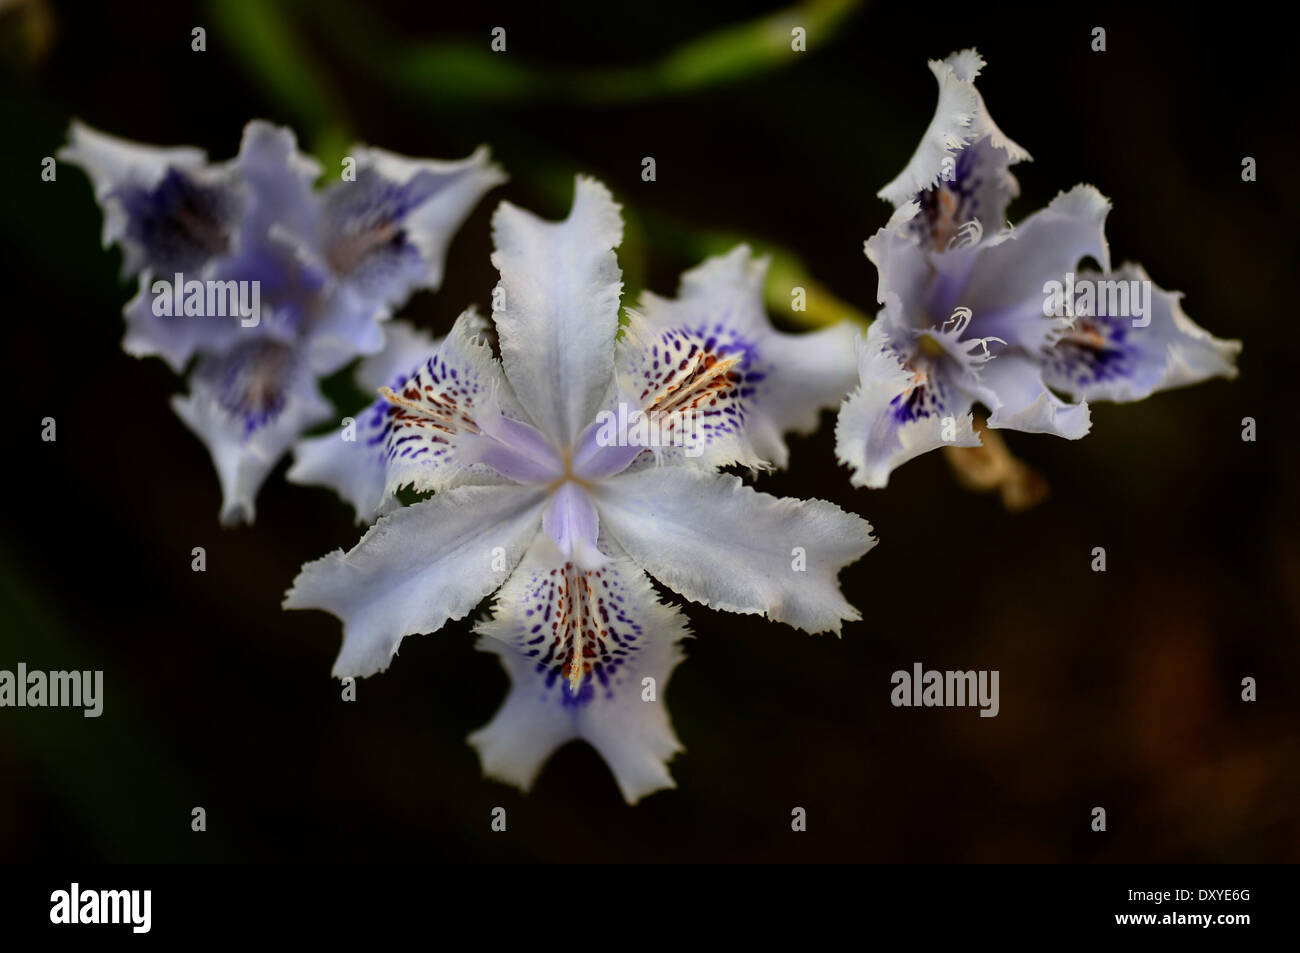 Changsha. 2nd Apr, 2014. Photo taken on April 2, 2014 shows Fringed Iris blossoms in Changsha, capital of central China's Hunan Province. © Long Hongtao/Xinhua/Alamy Live News - Stock Image